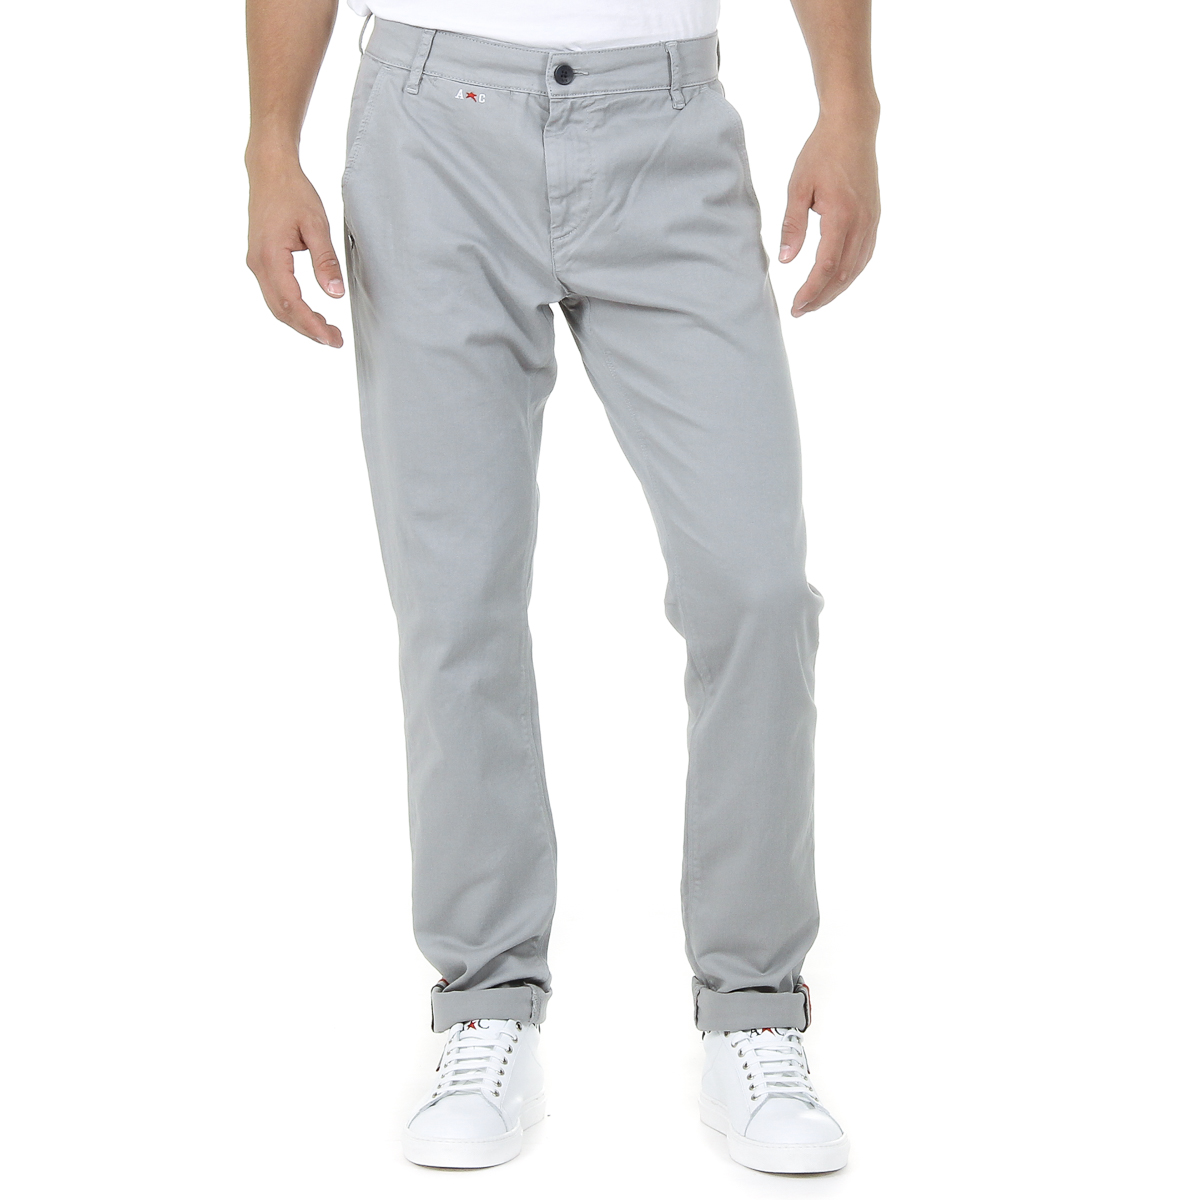 Primary image for Andrew Charles Mens Pants Light Grey AMARA